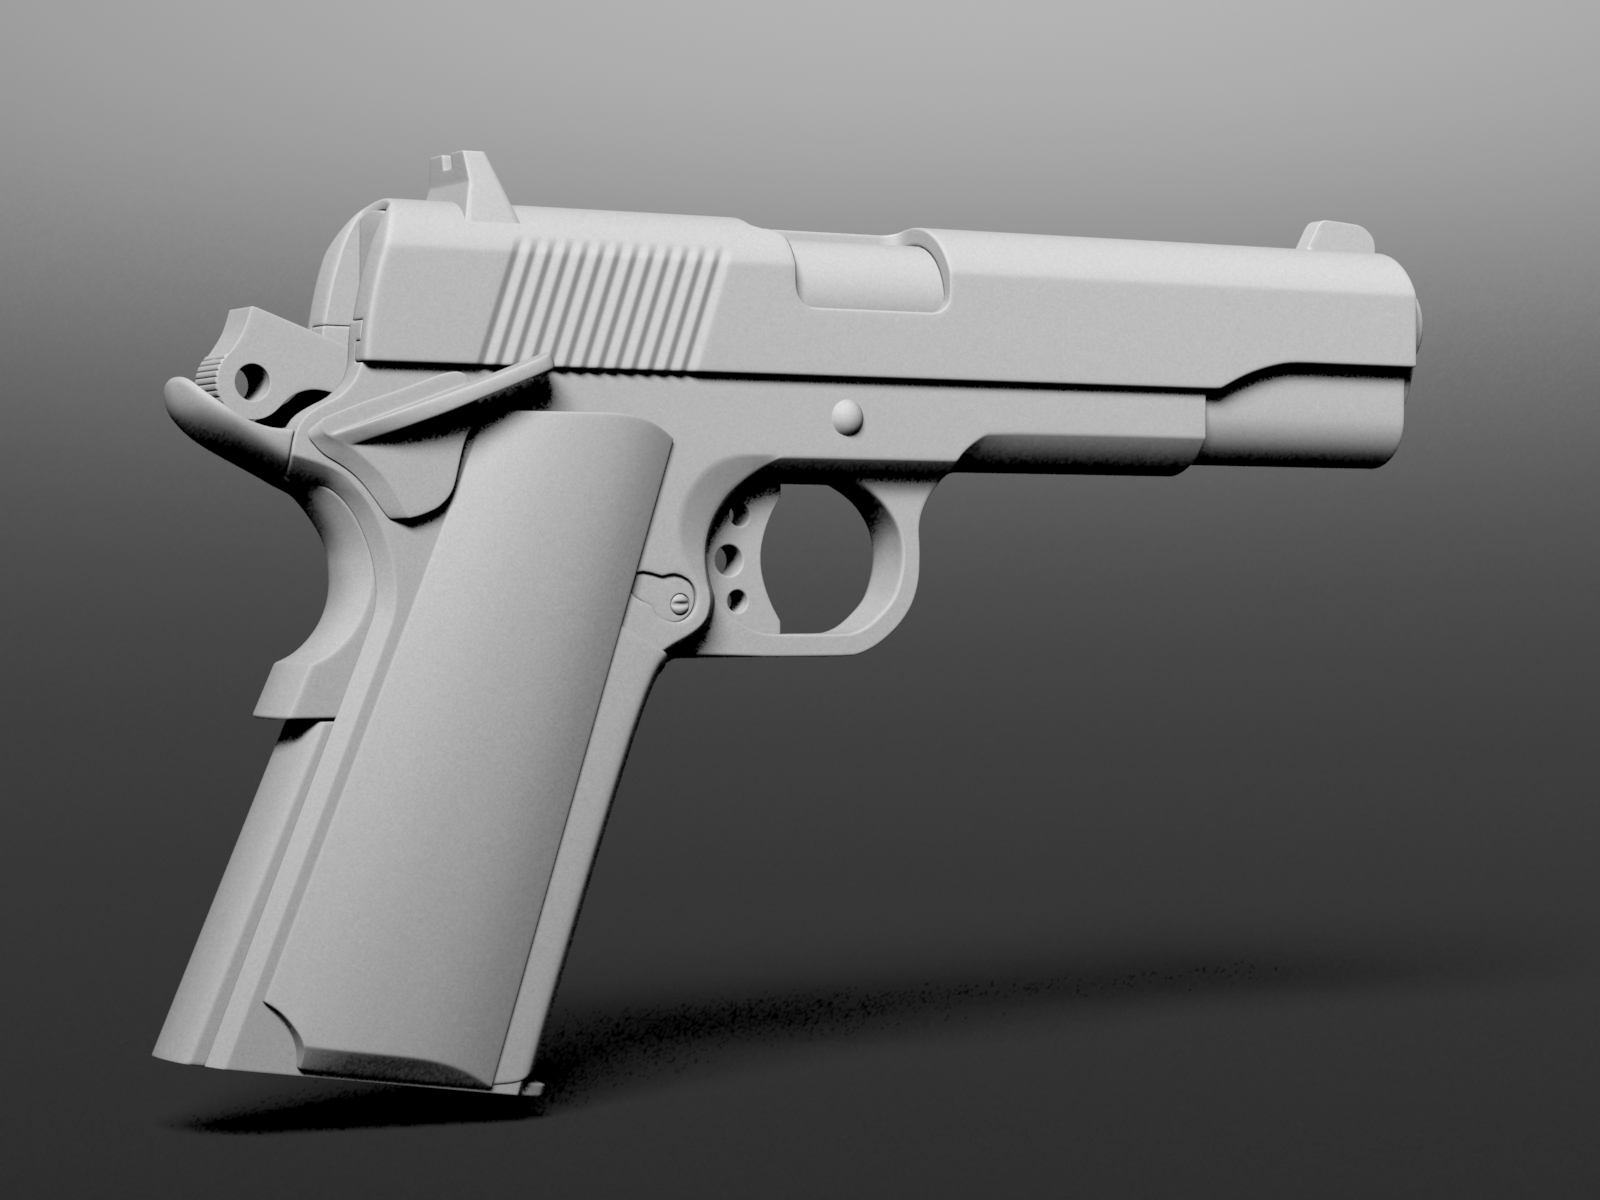 3d model gun free download